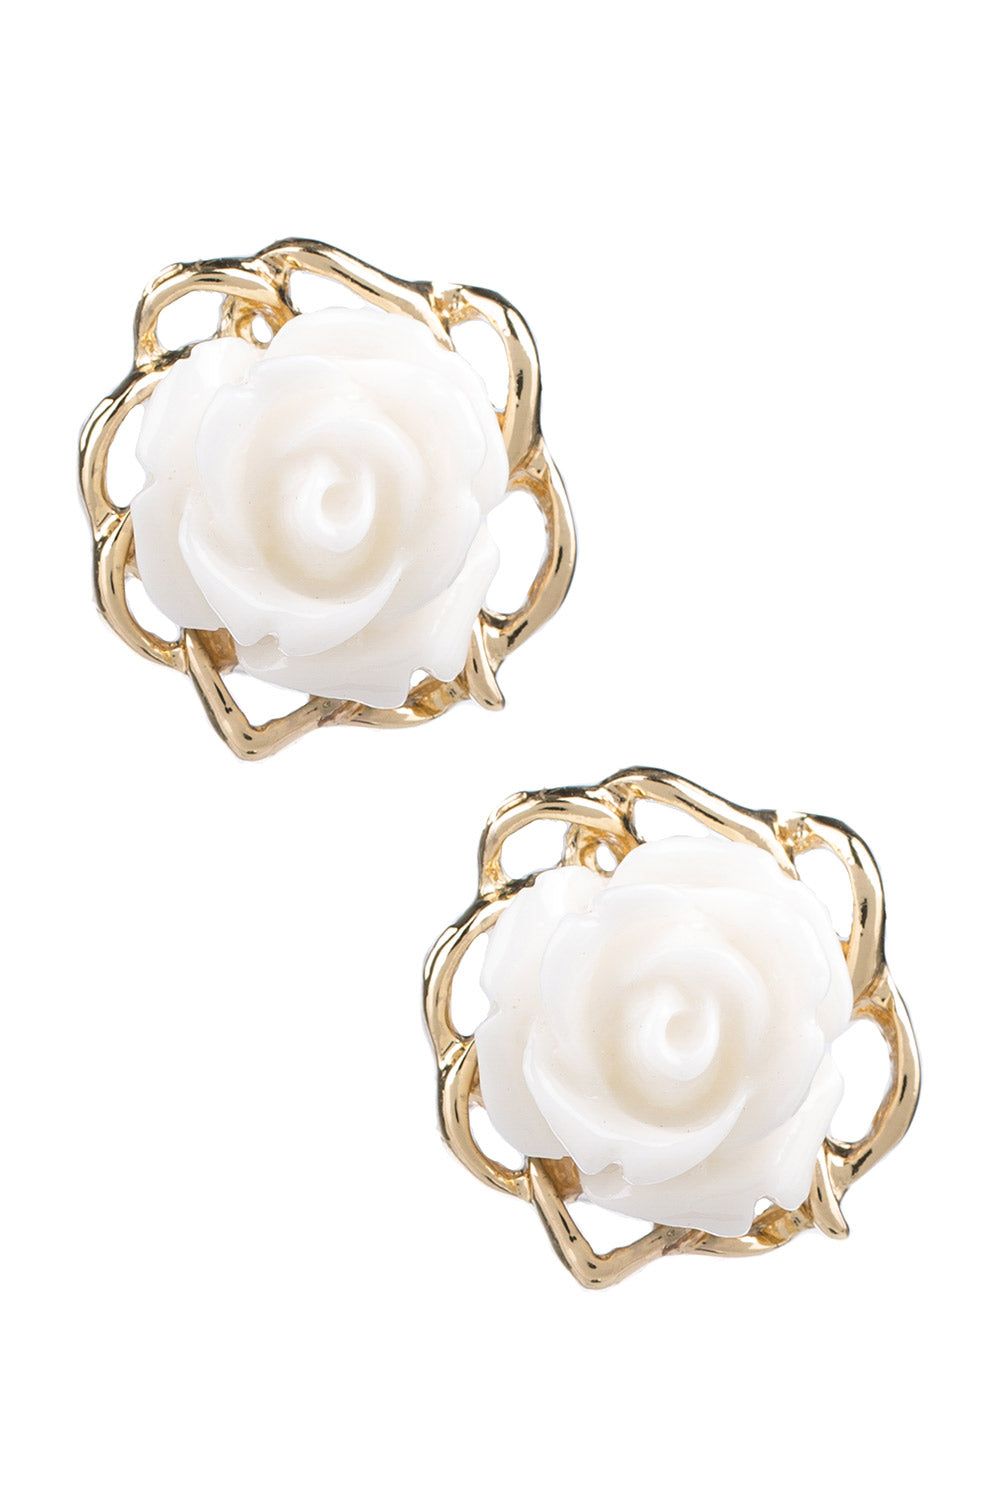 Type 1 Rose Bud Earrings in Ivory